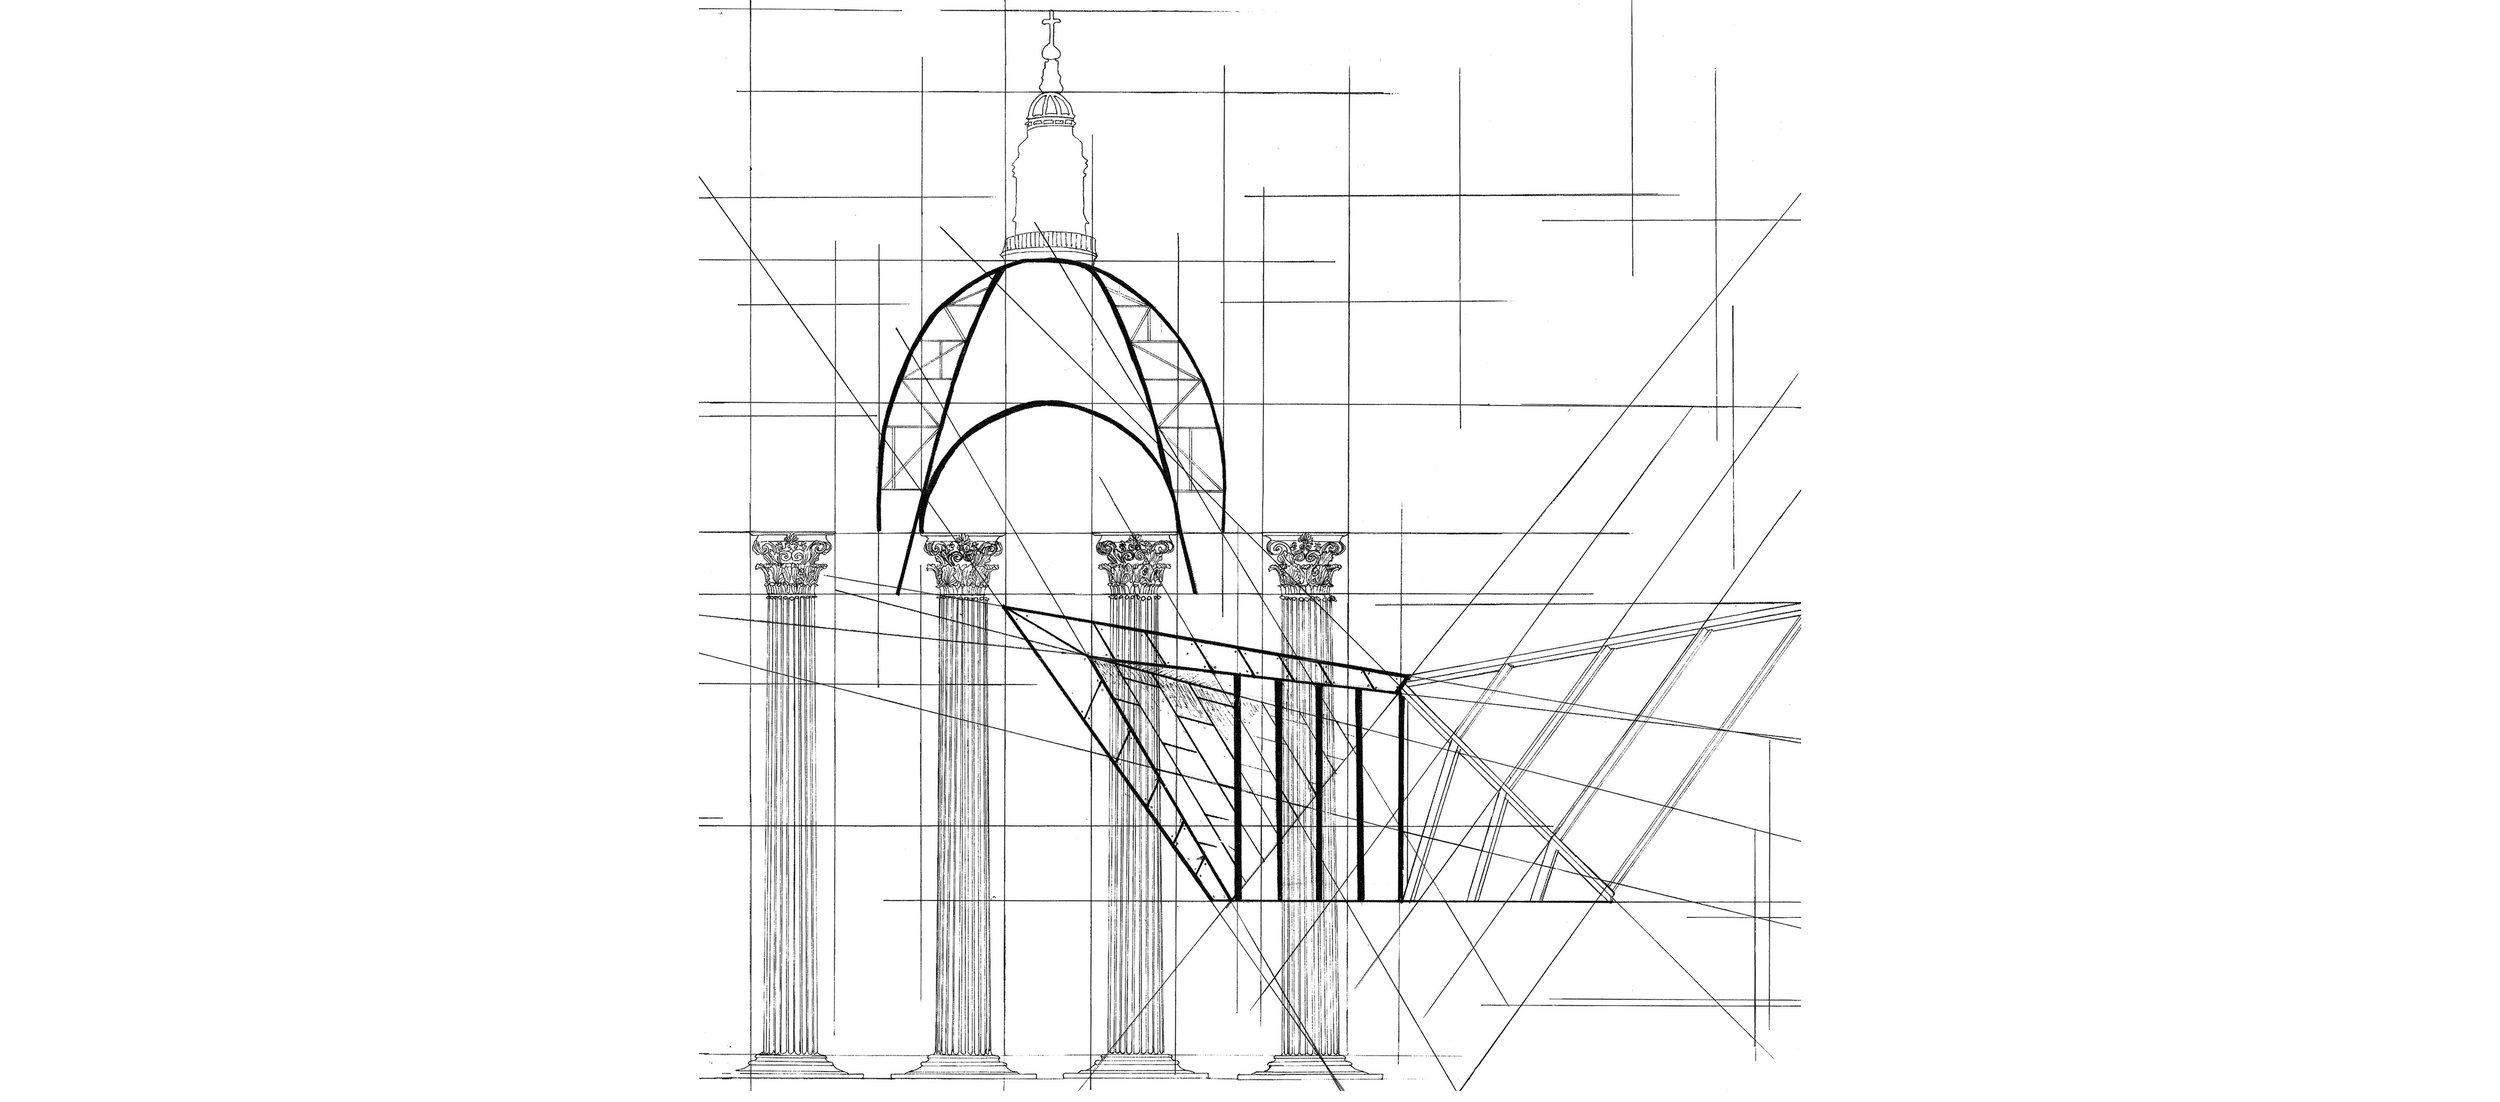 arch_drawing_relics and recent.png